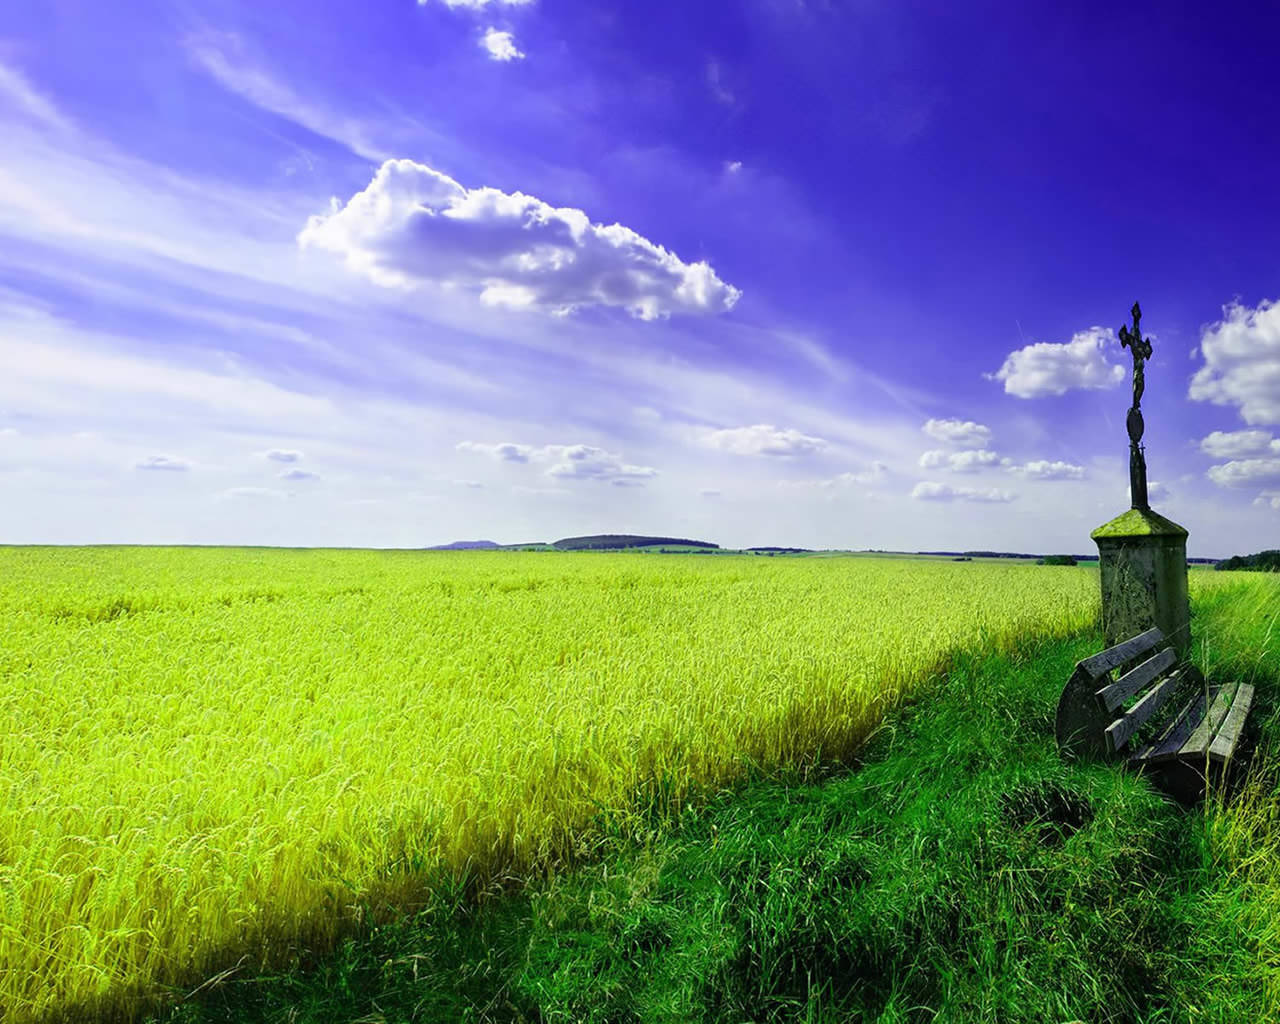 spring natural scenery hd - photo #40